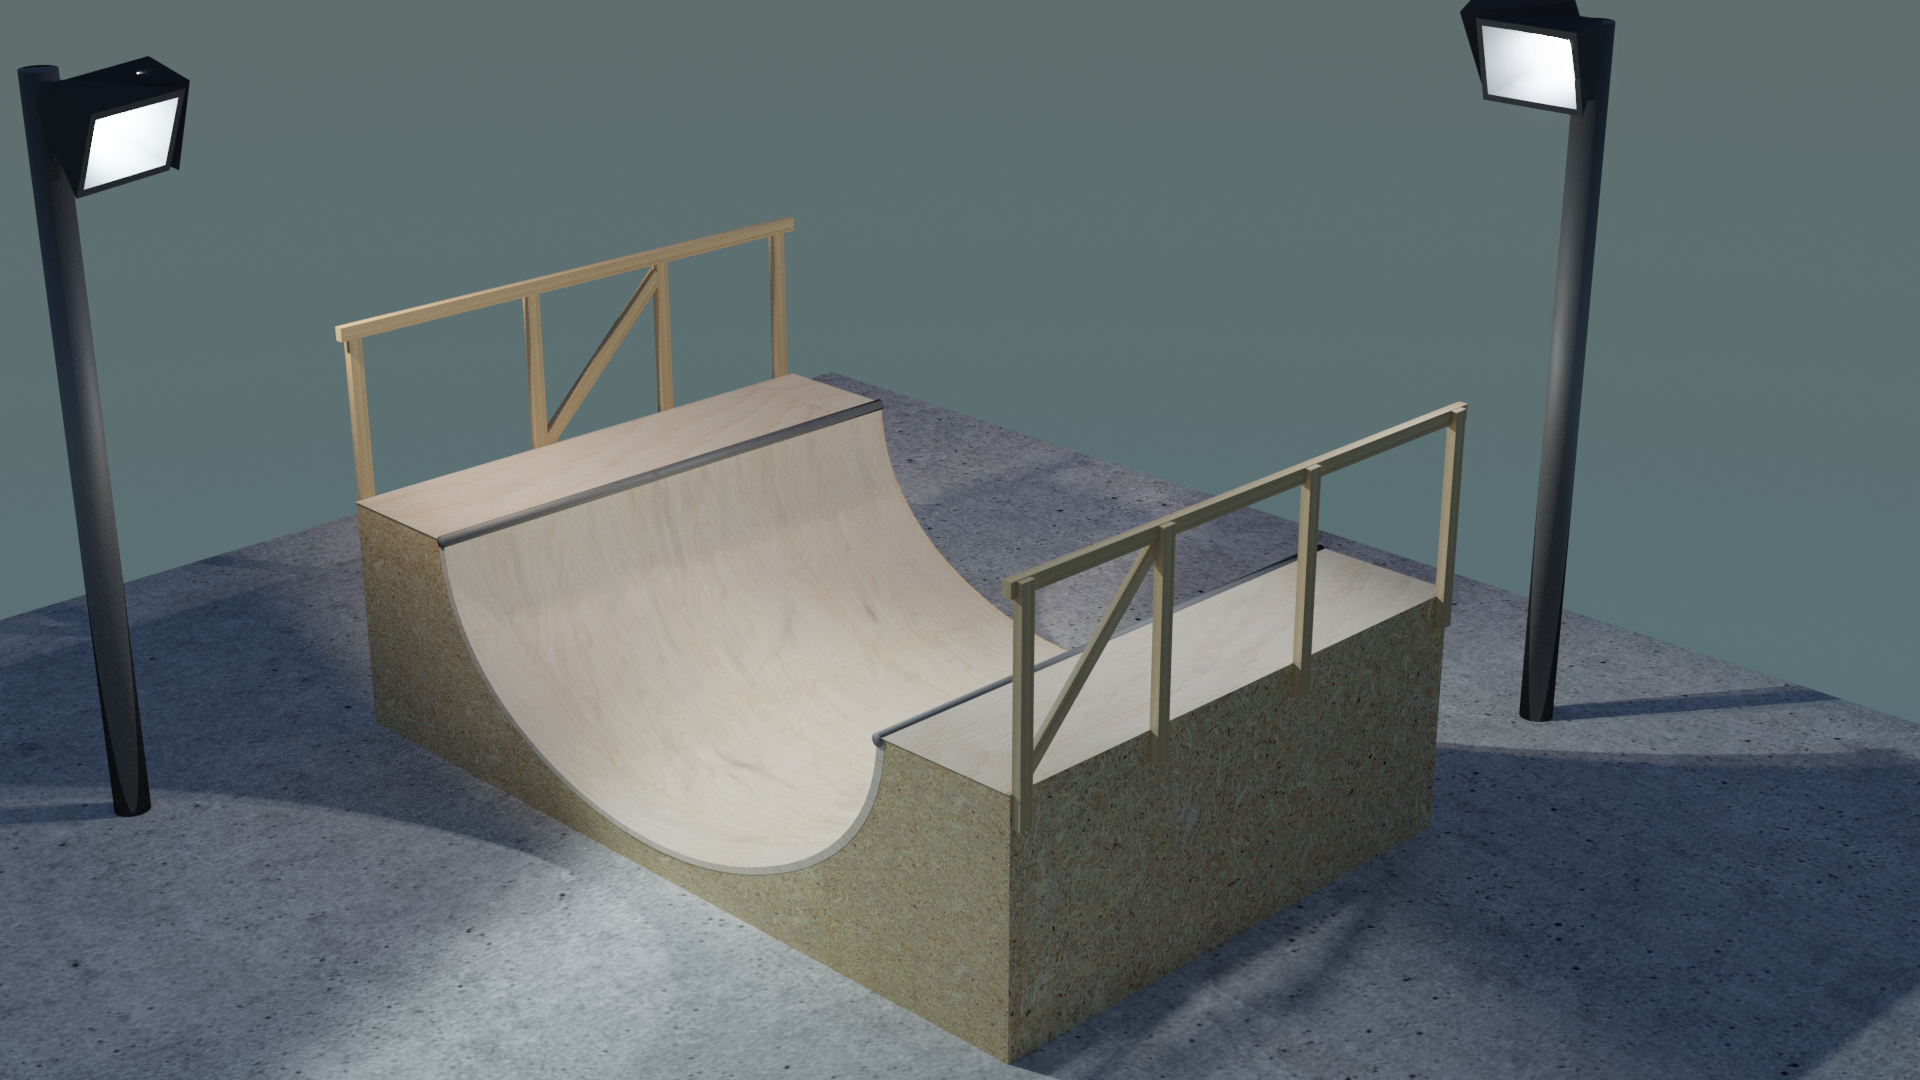 Skate Ramp (Blender Render)